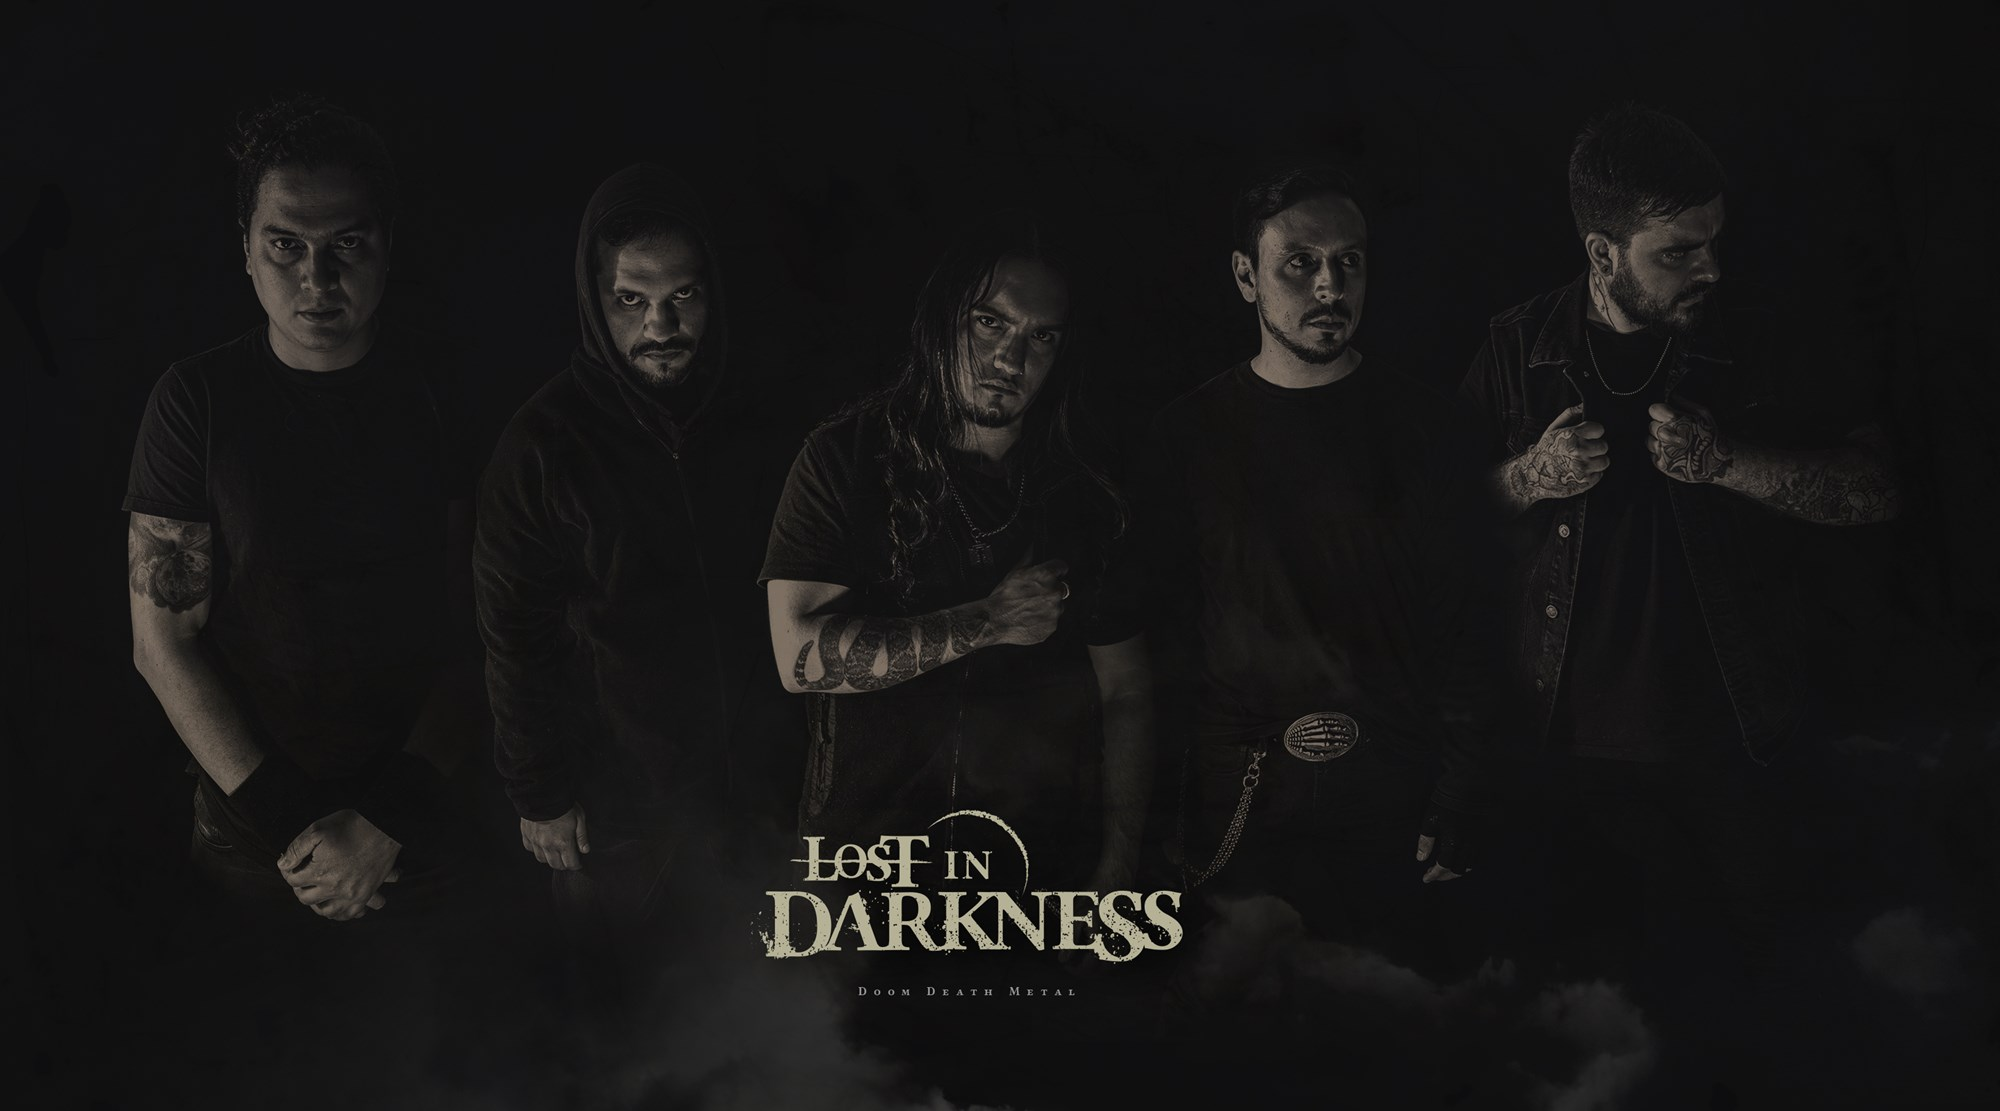 Lost in Darkness - Photo